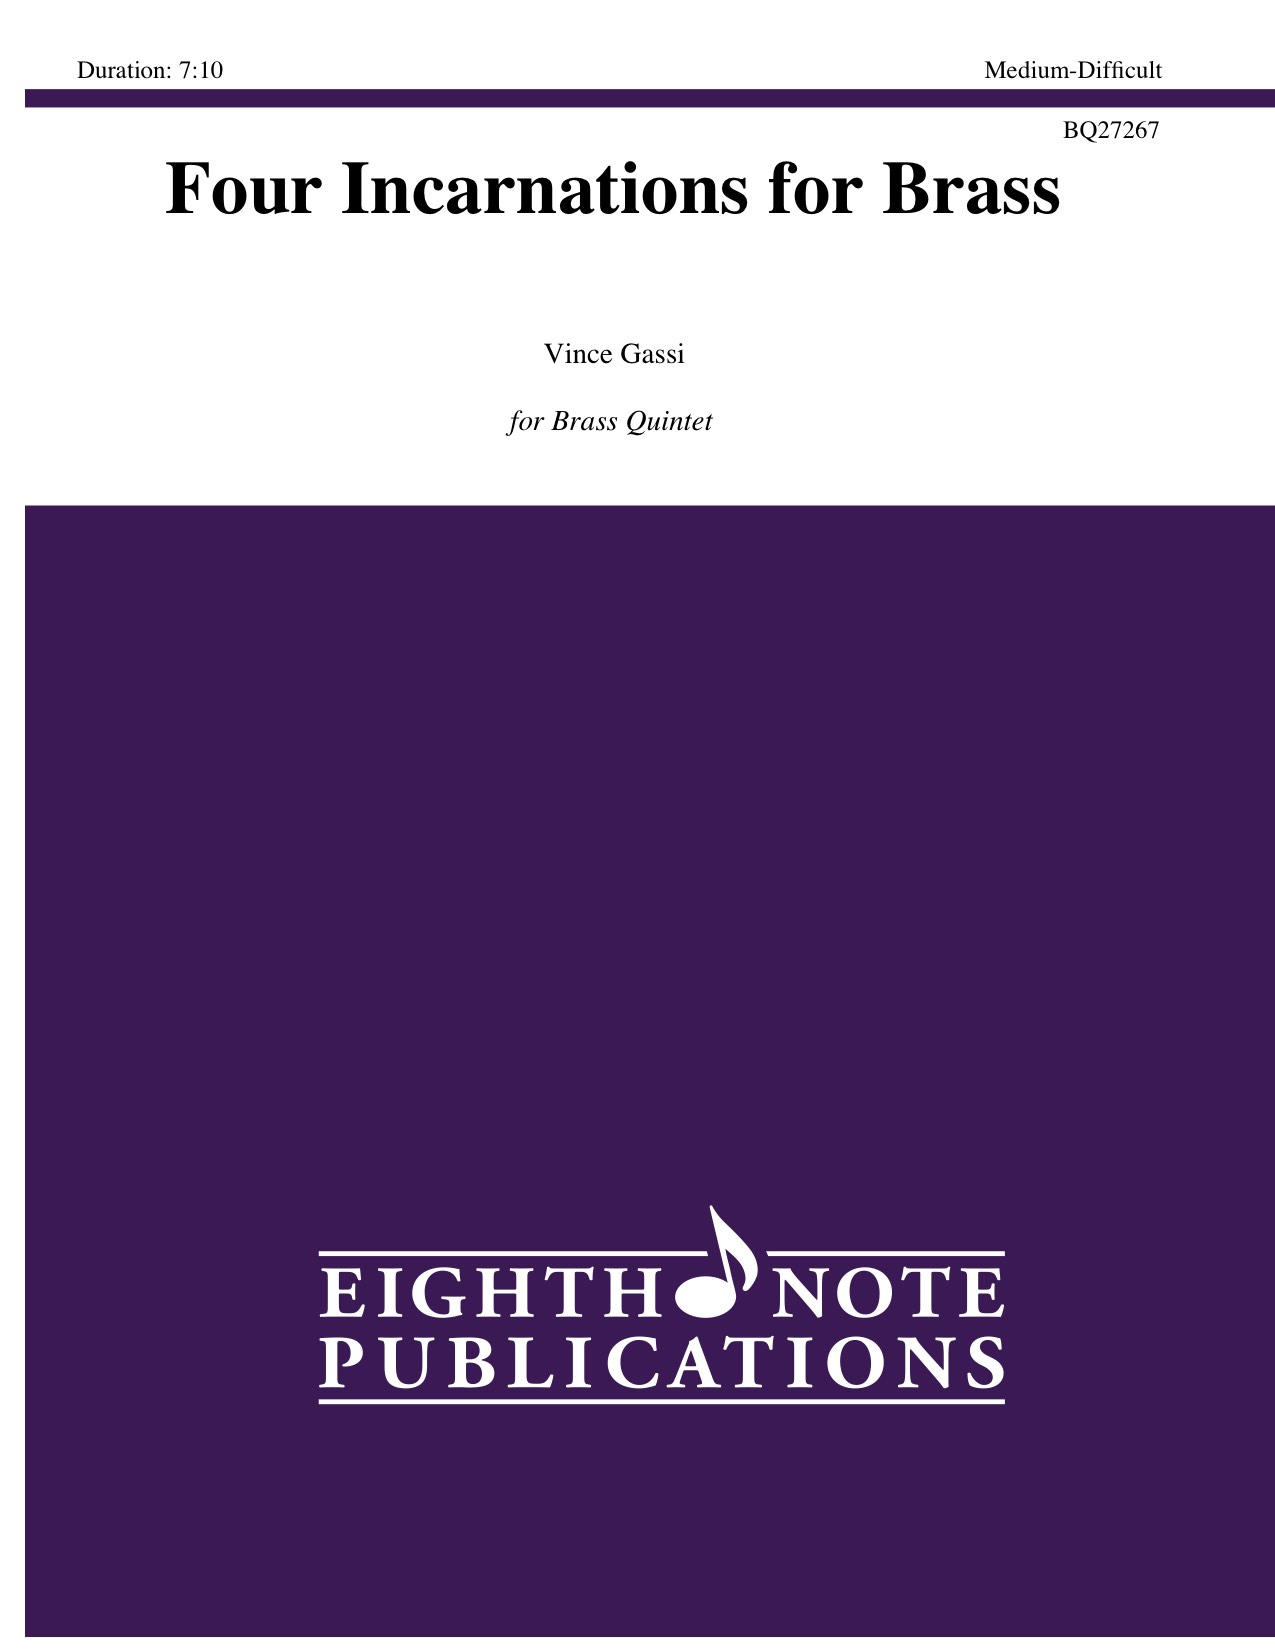 Four Incarnations for Brass - Vince Gassi